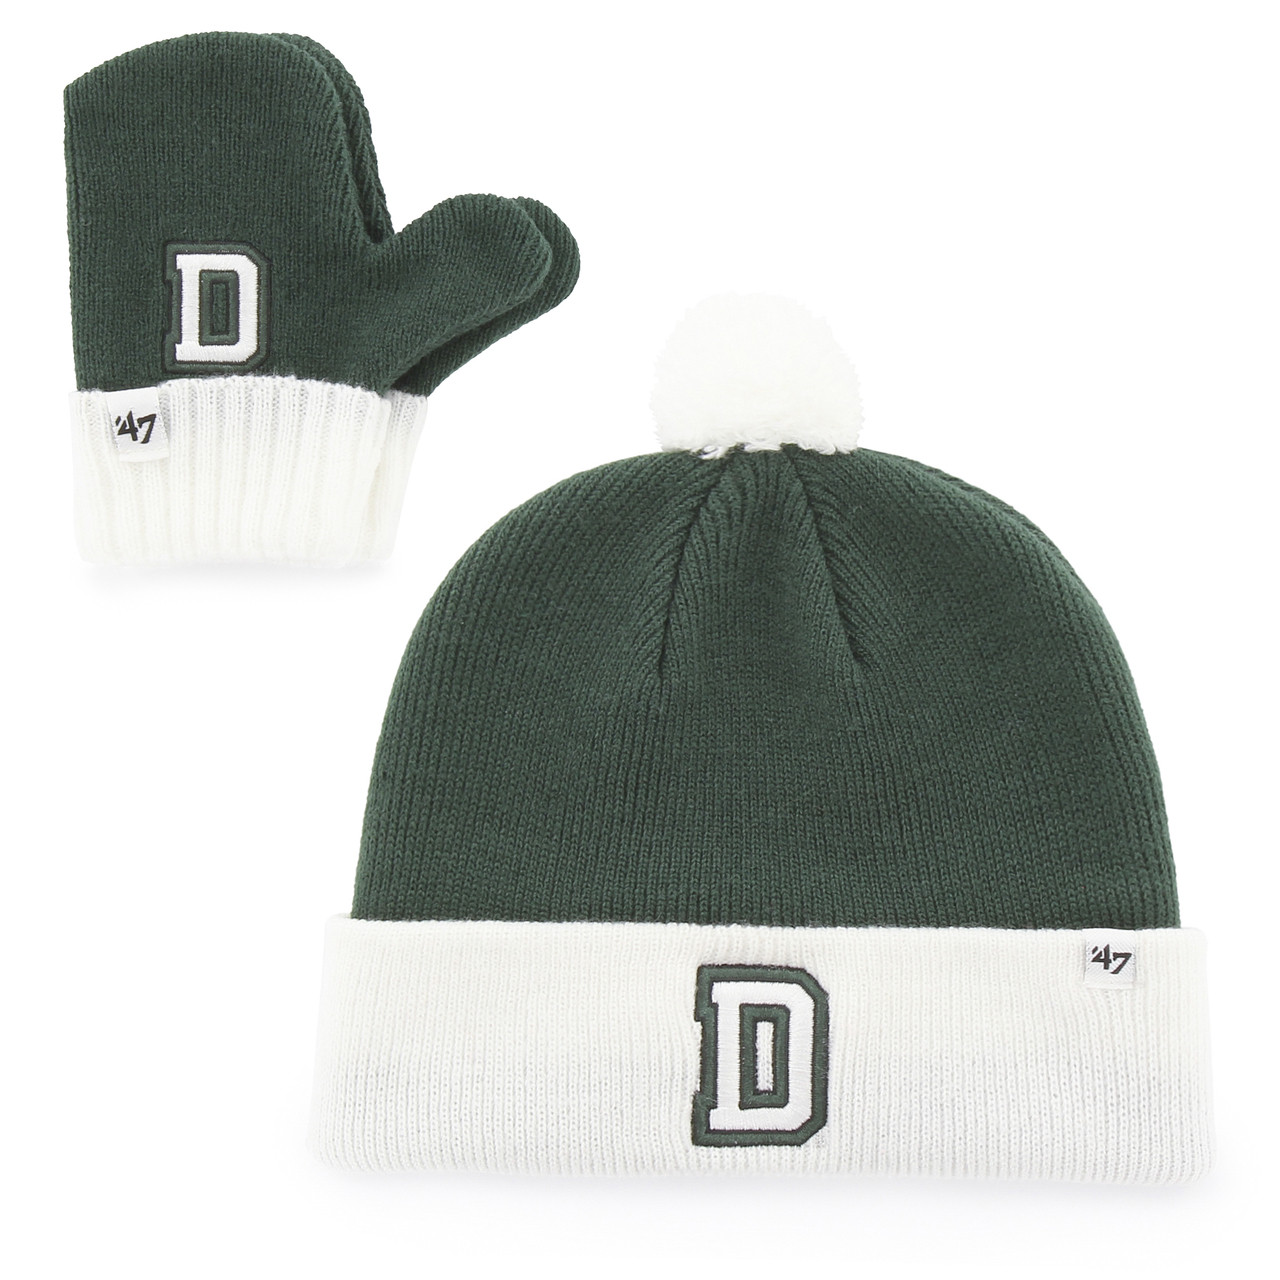 ed7a694650f3f Toddler matching mittens and hat with  D  in green ...